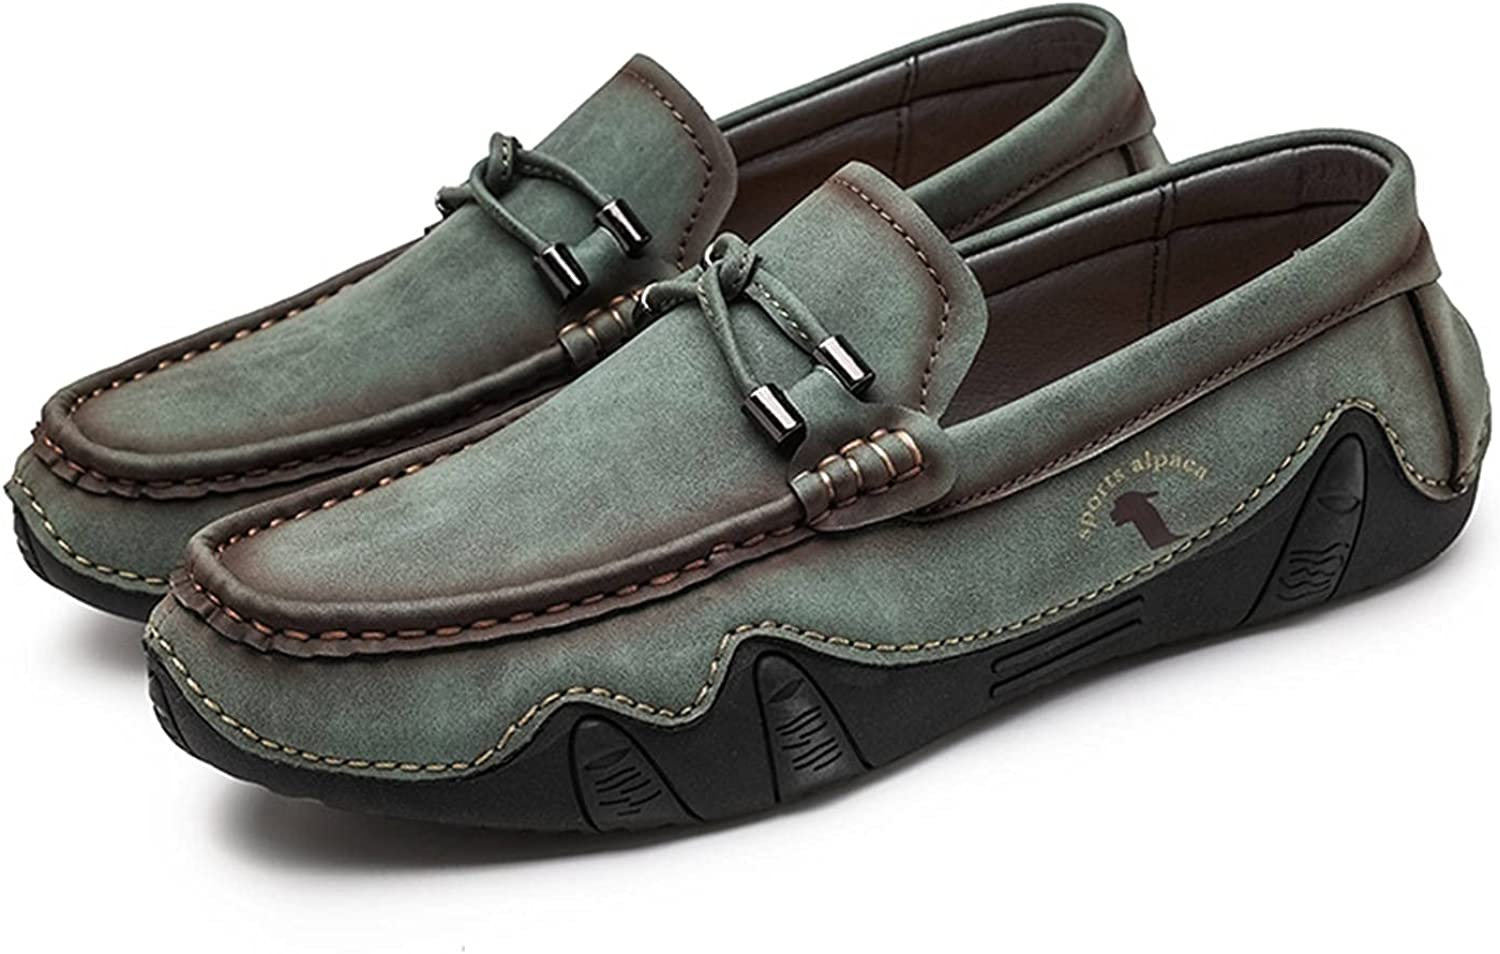 Men's Flat Loafers Closed Round M Phoenix Many popular brands Mall One-Step Halter Toe Mules